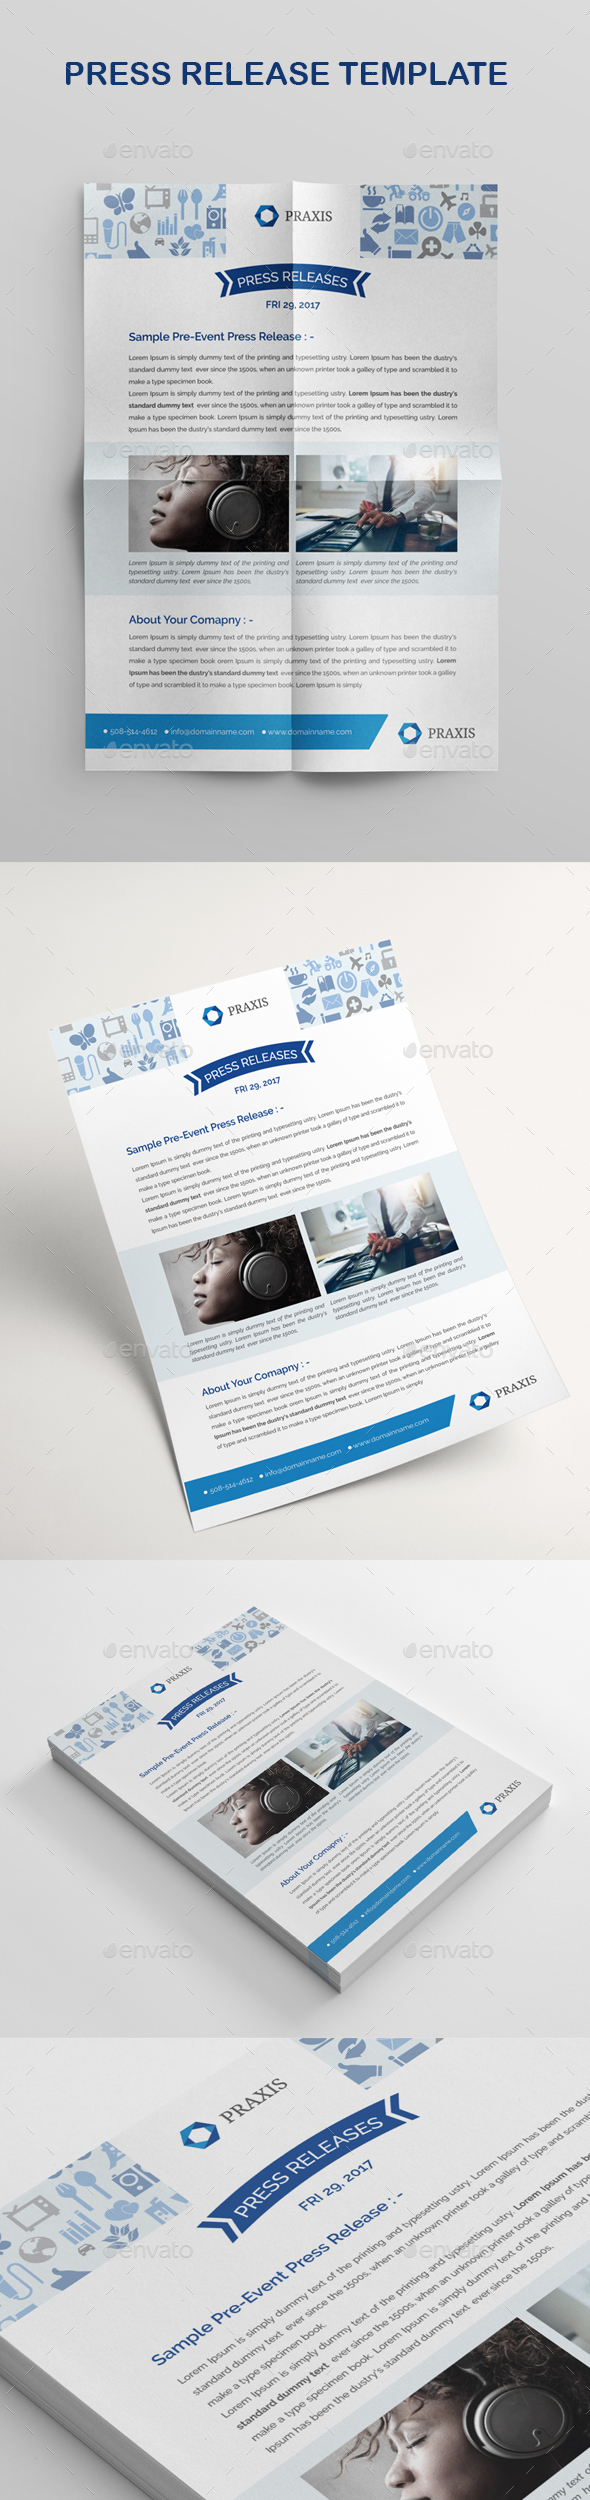 Press Release Template - Stationery Print Templates